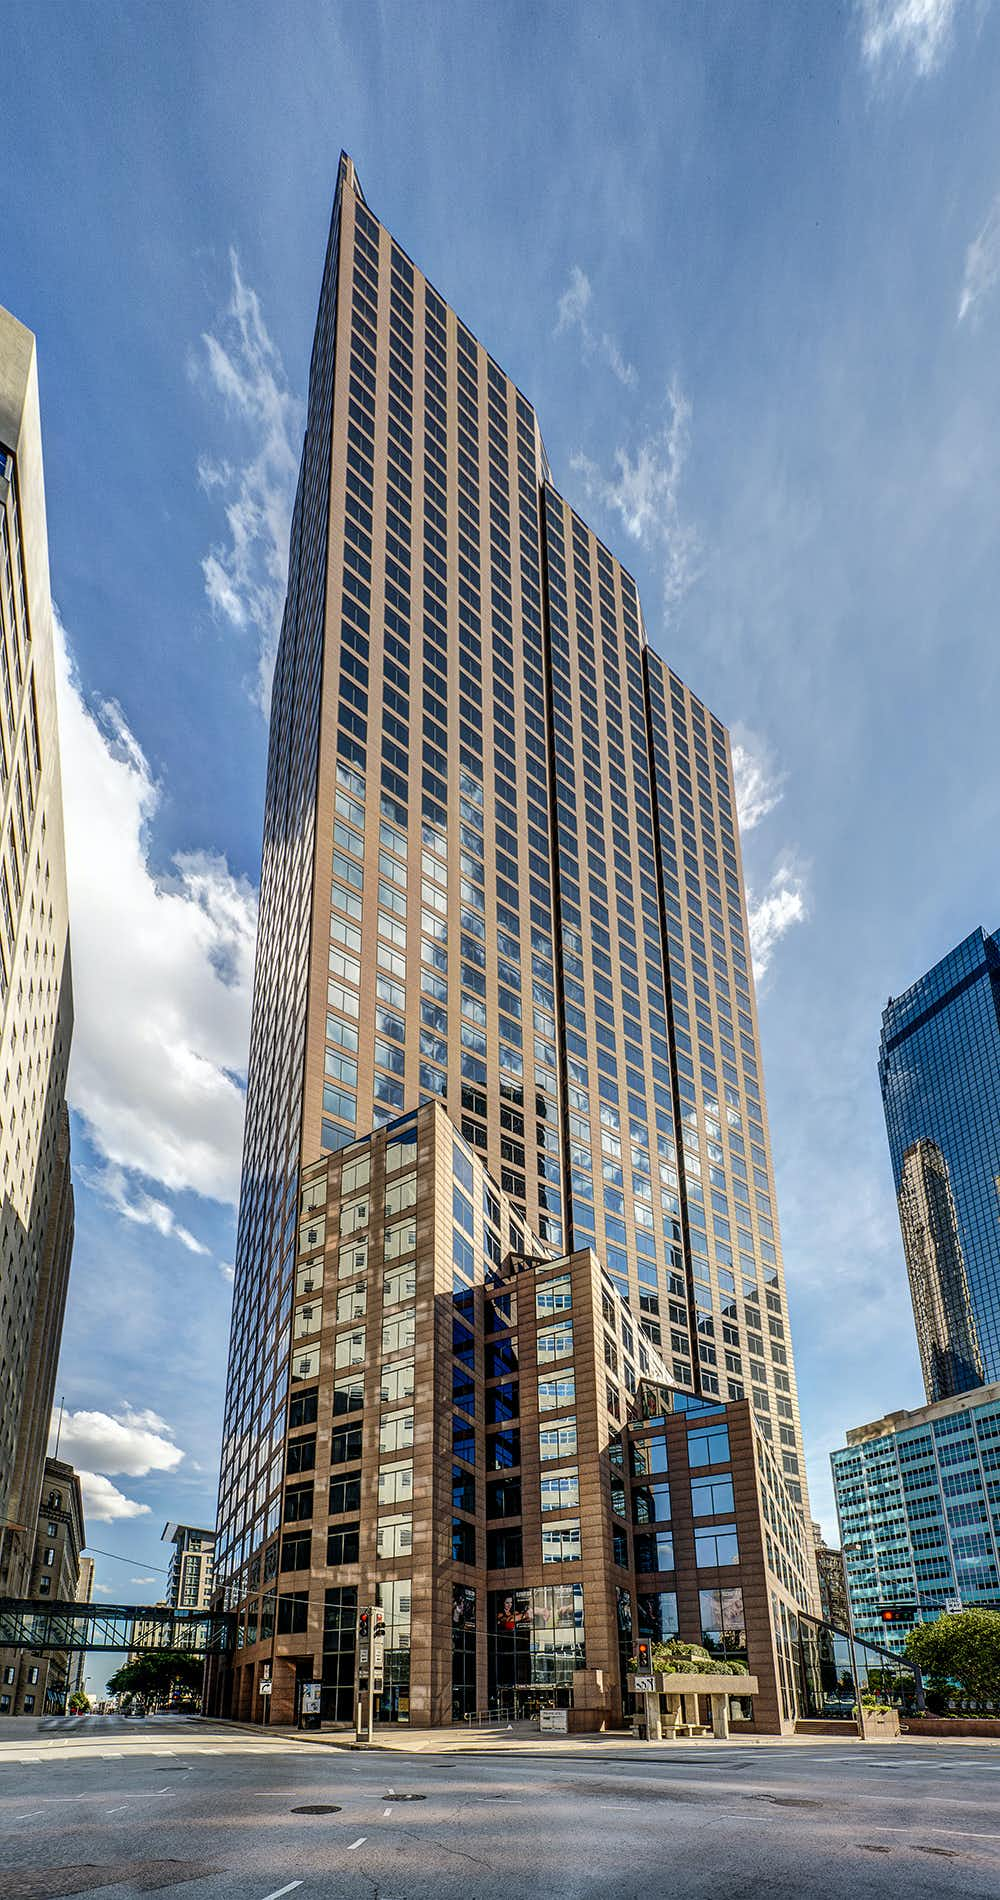 Akin Gump now has about 90 attorneys working in the 49-story 1700 Pacific tower downtown.DMN files